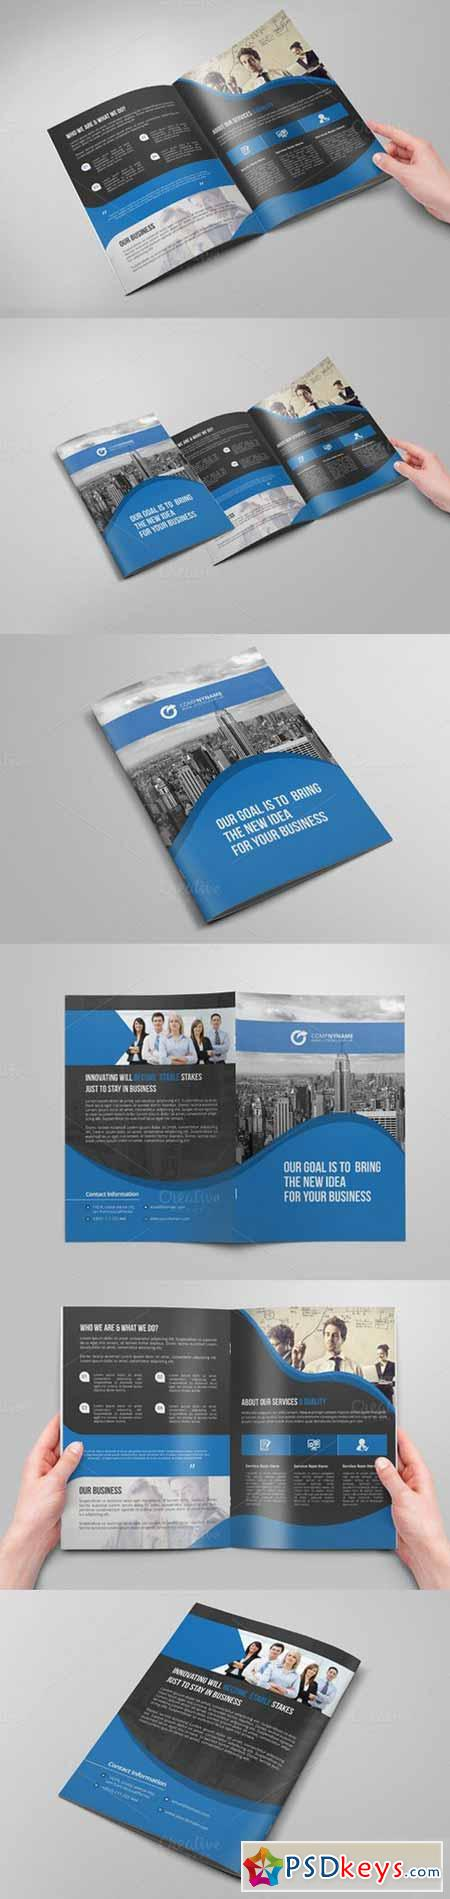 Bi fold brochure template 479080 free download photoshop for Bi fold brochure template illustrator